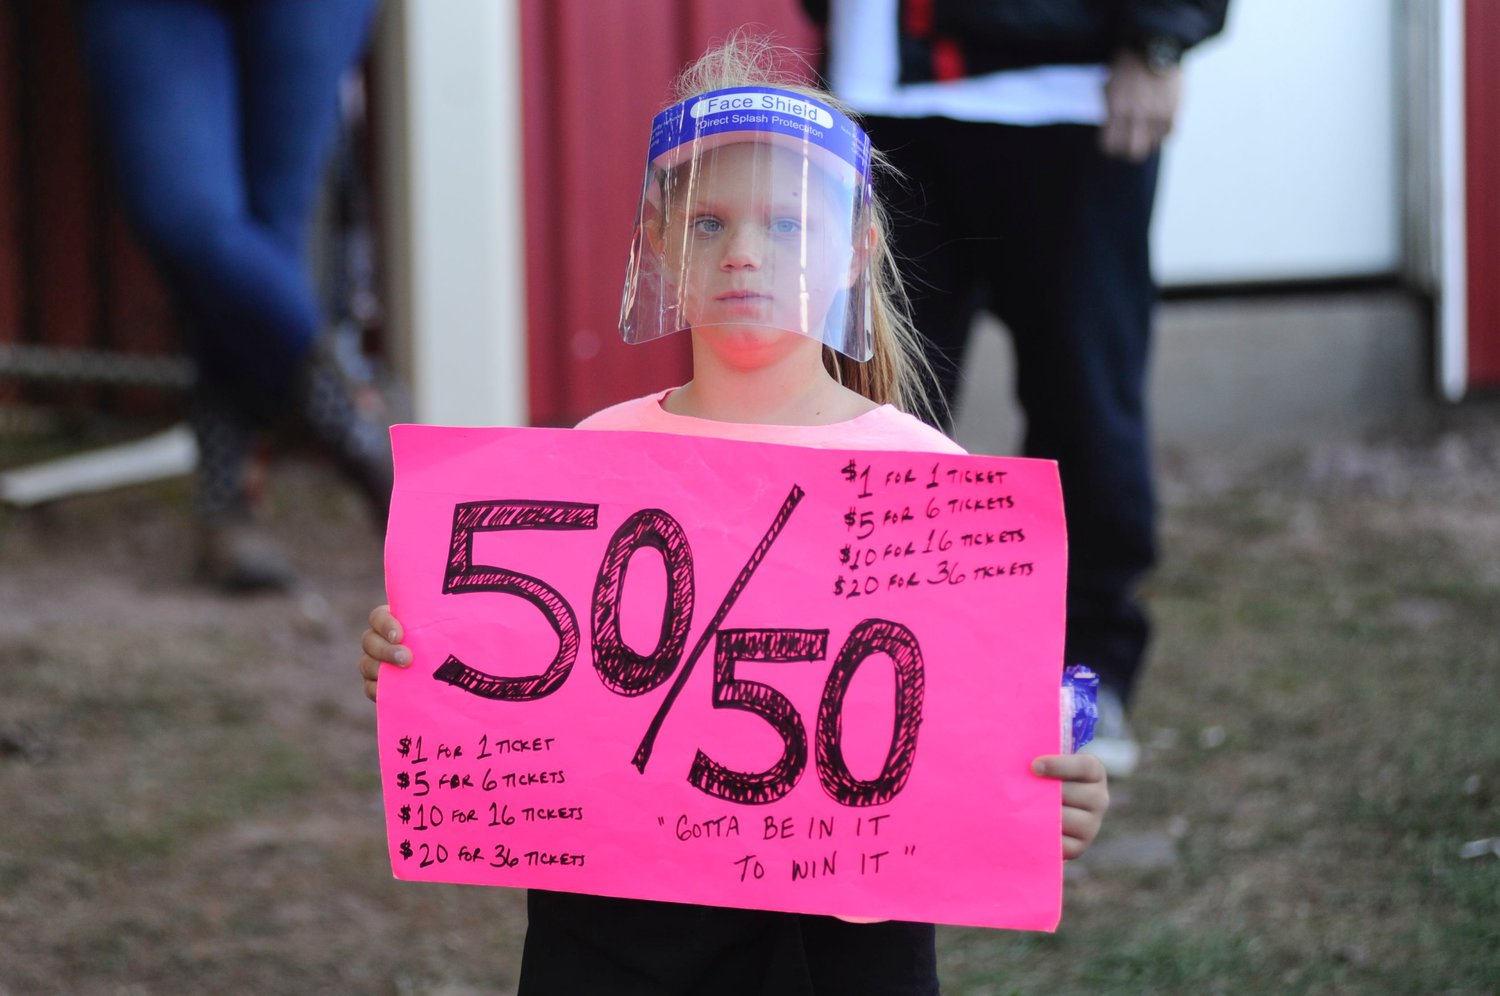 Winner takes all: the 50-percent version. Nine-year-old Charlotte Crane of Montgomery, NY works the crowd selling 50/50 tickets. He dad, Andy, is the track's co-announcer, promoter and veteran racecar driver.